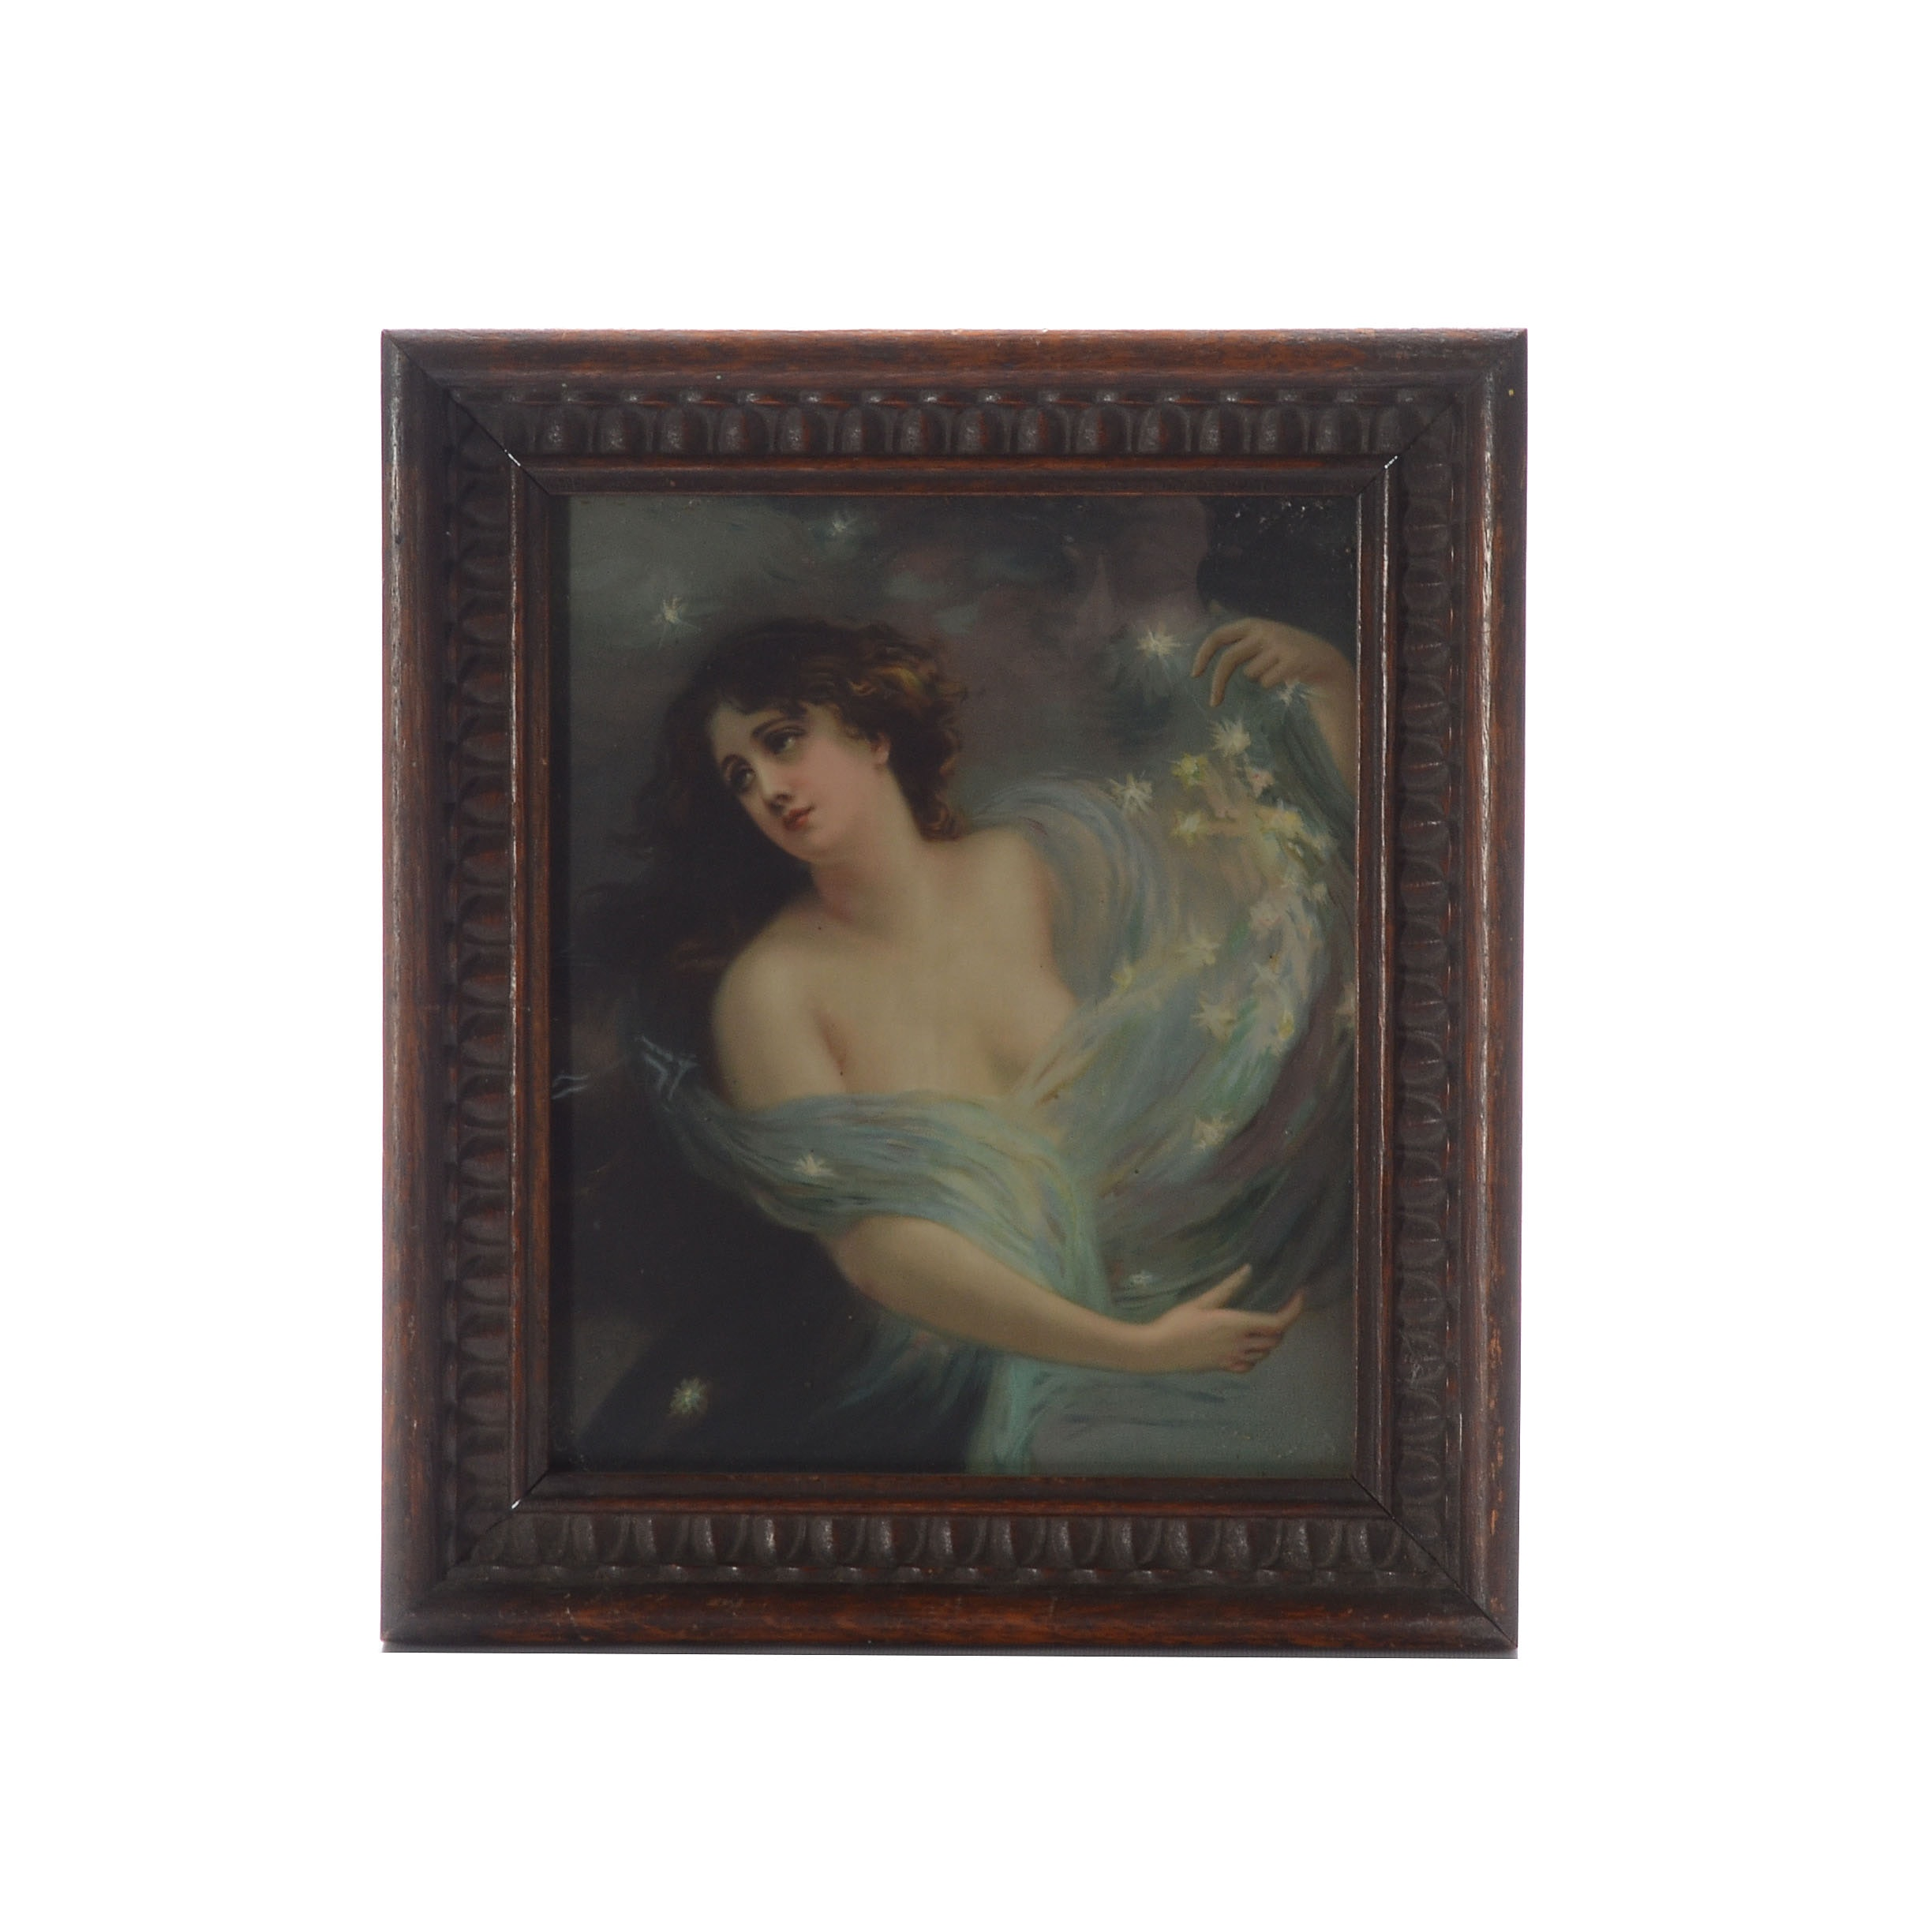 """Chromolithograph After Édouard Bisson's """"Night"""" in Antique Carved Wooden Frame"""